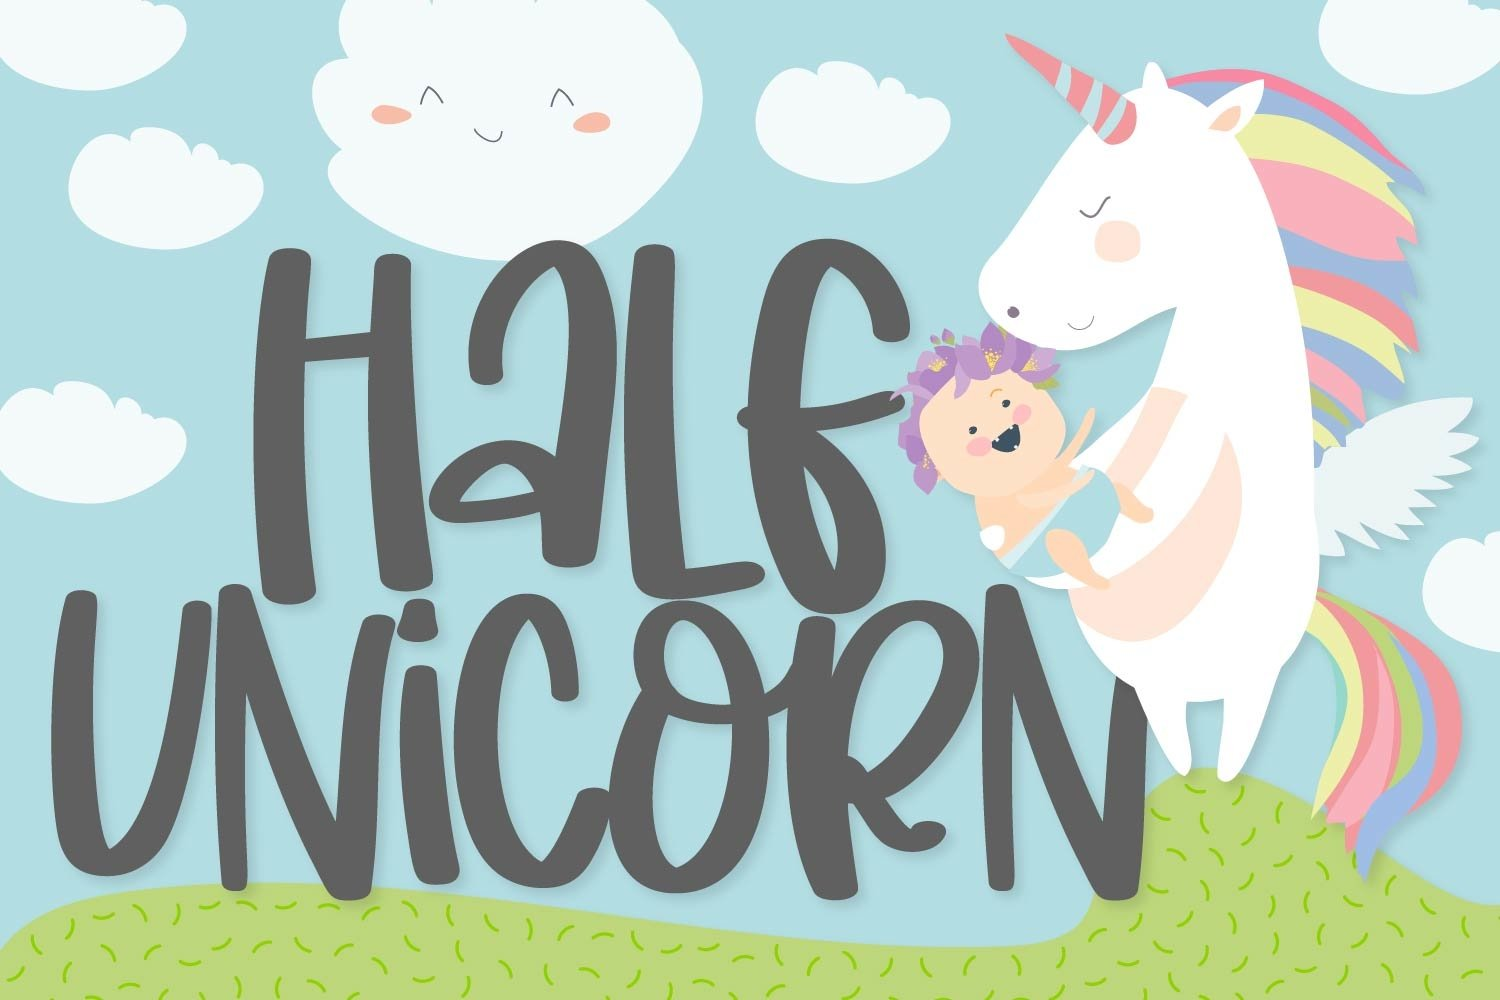 Half Unicorn - A Silly Hand Written Type example image 1